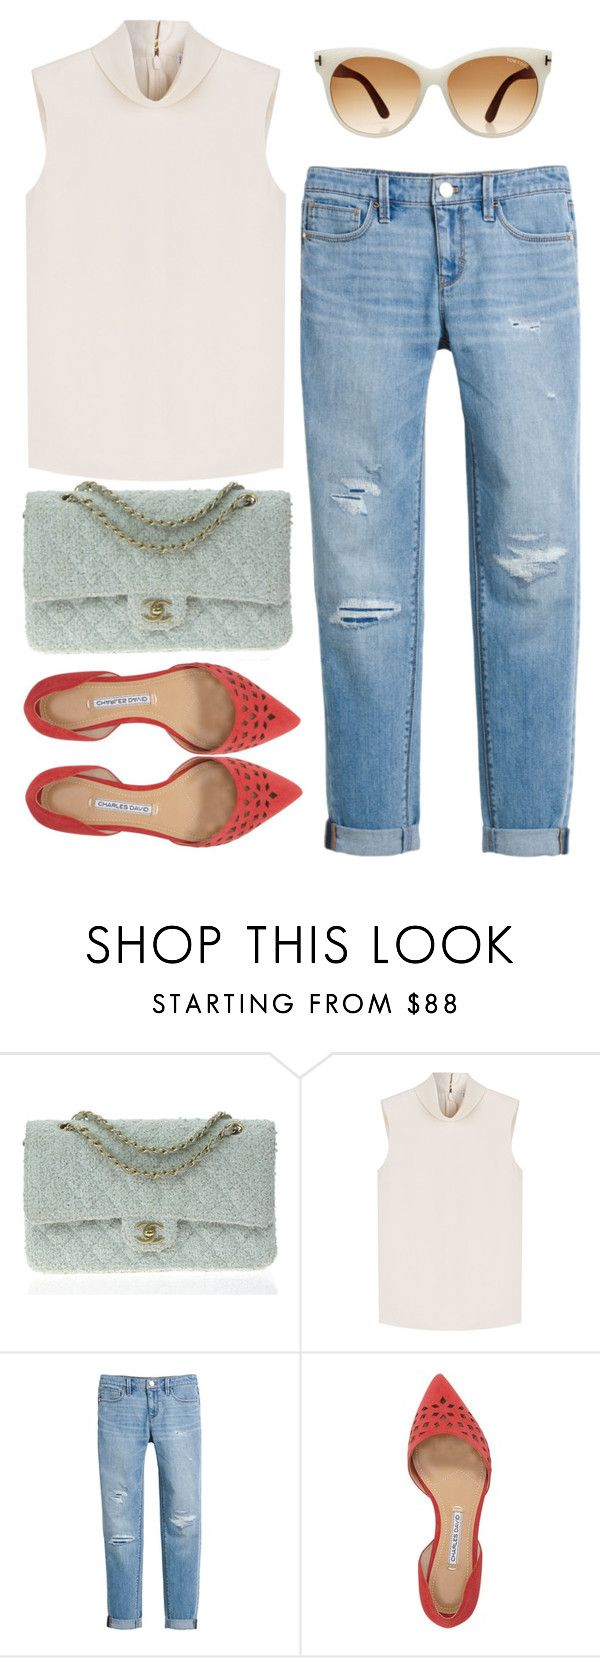 """Без названия #86"" by darina-kozlova ❤ liked on Polyvore featuring Chanel, RED Valentino, White House Black Market, Charles David and Tom Ford"